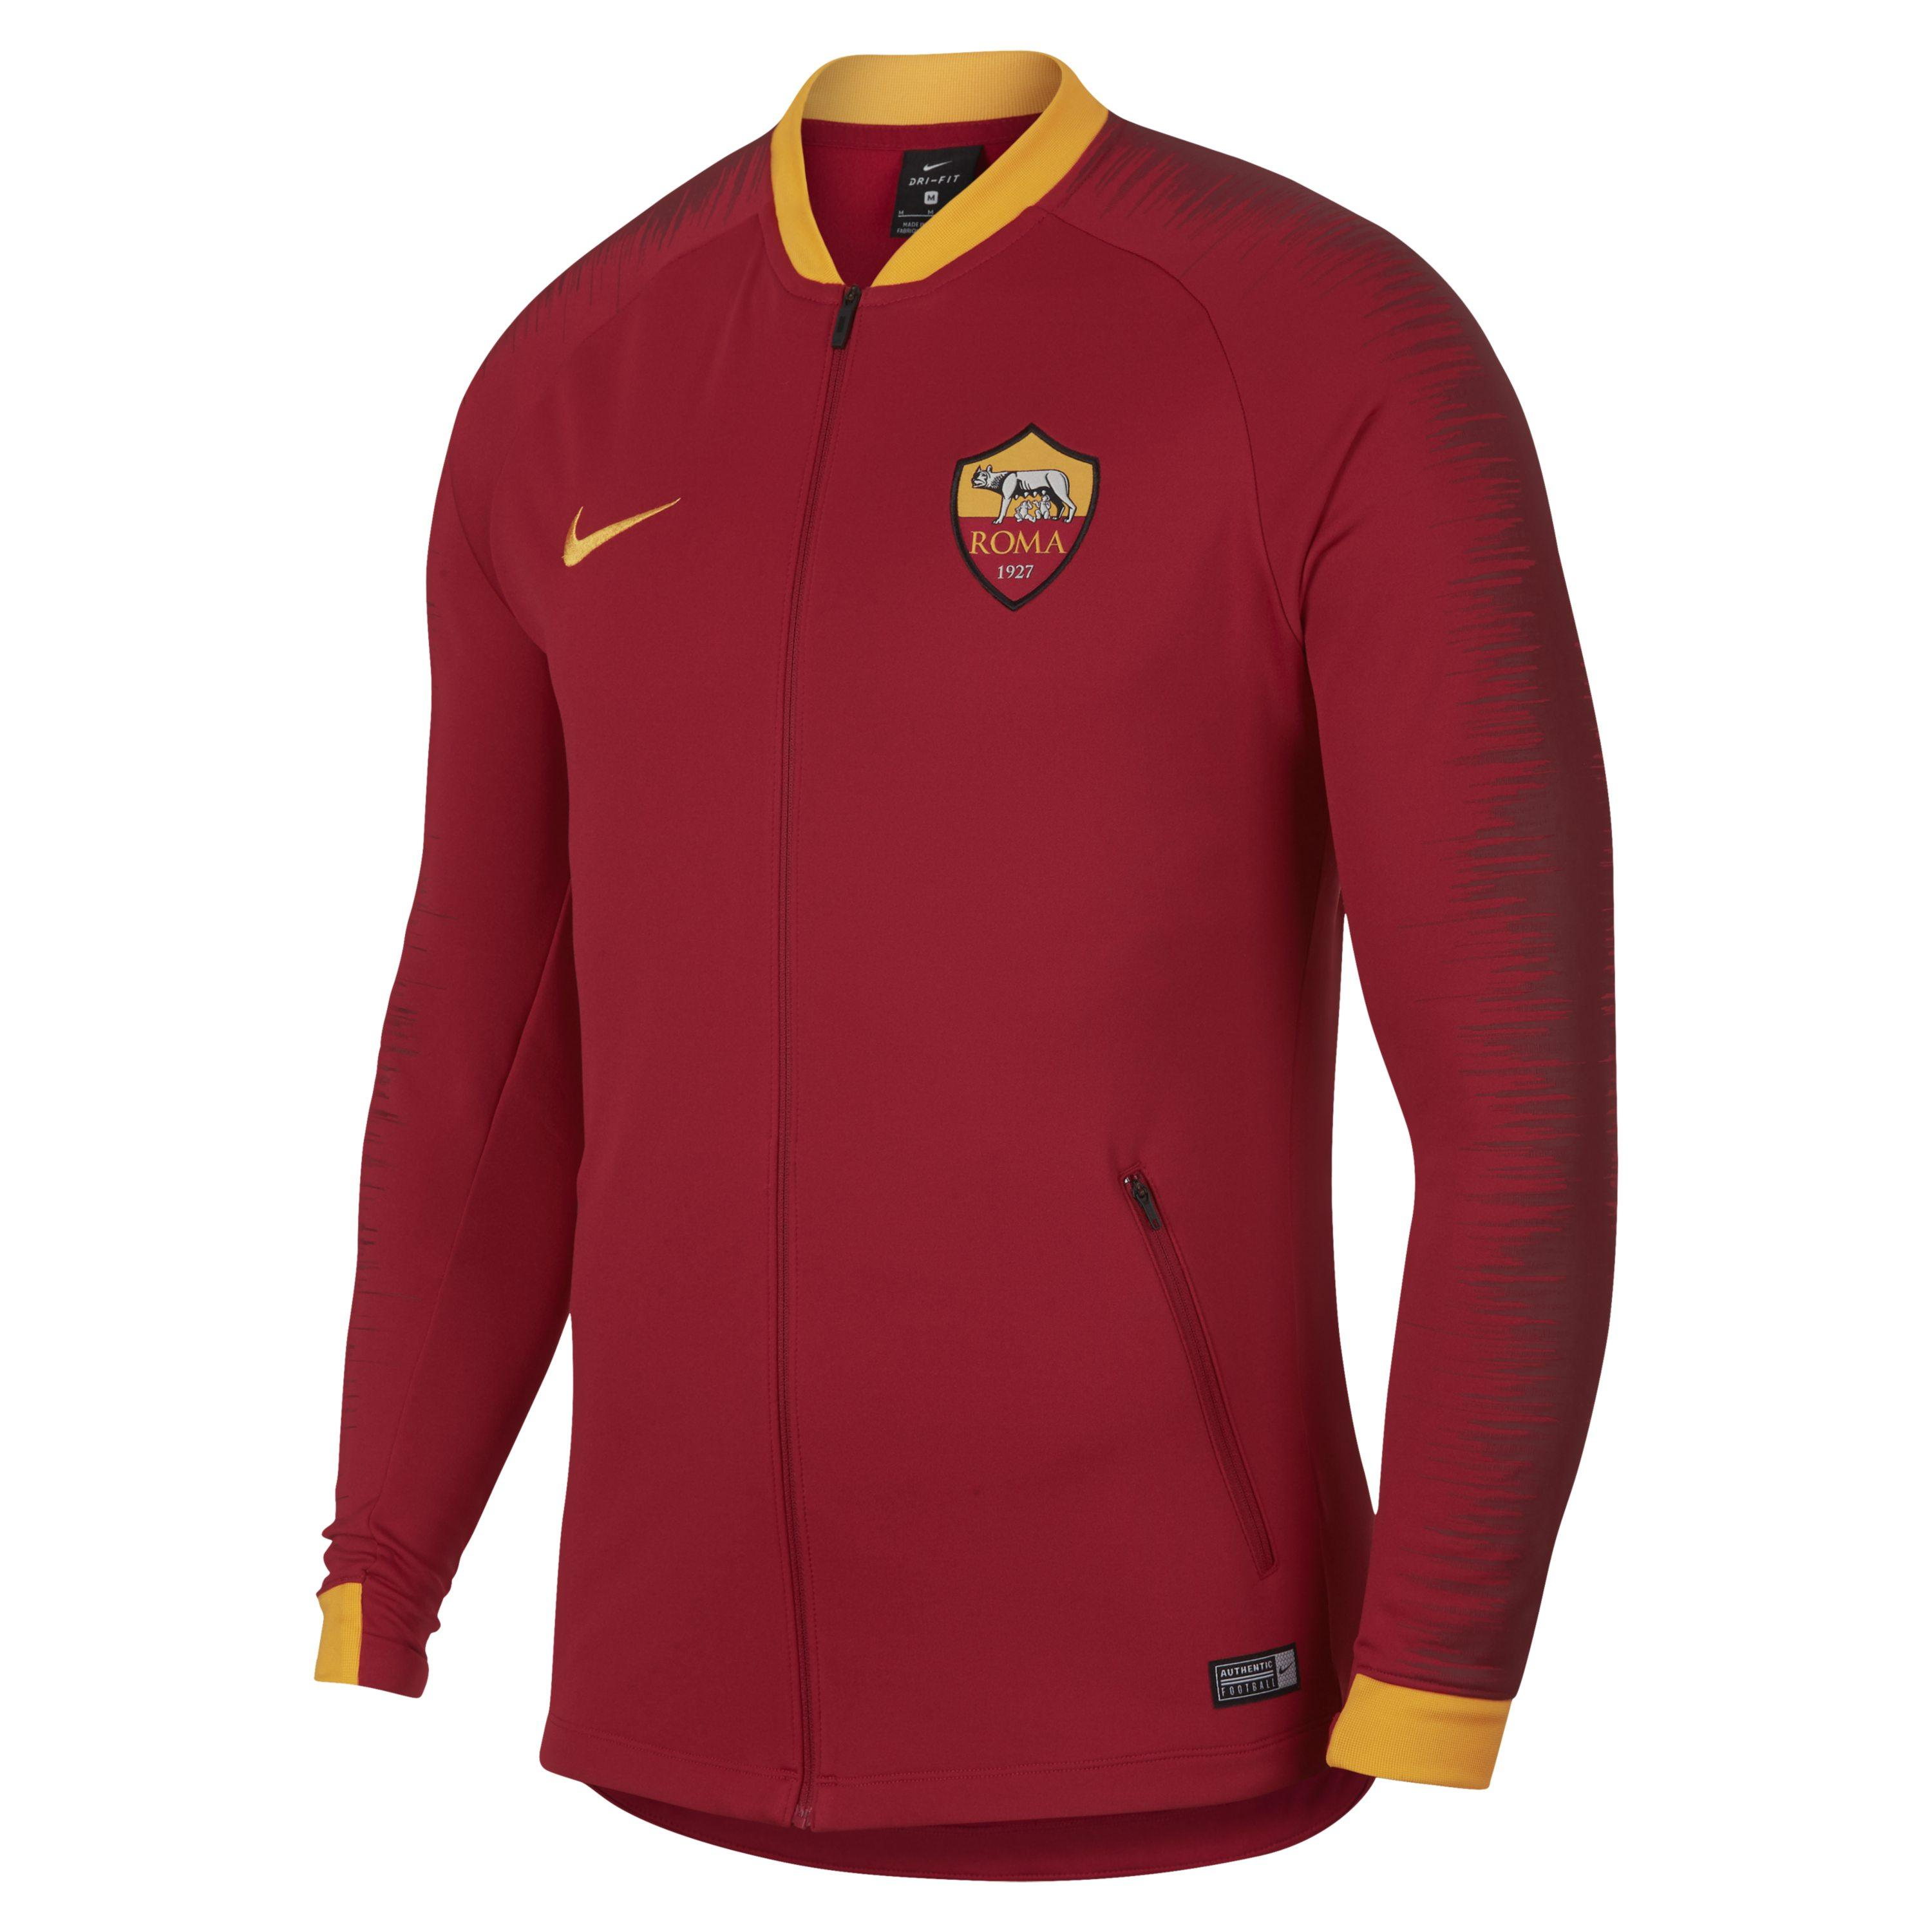 e4dbc8a31 Nike A.s. Roma Anthem Football Jacket in Red for Men - Lyst